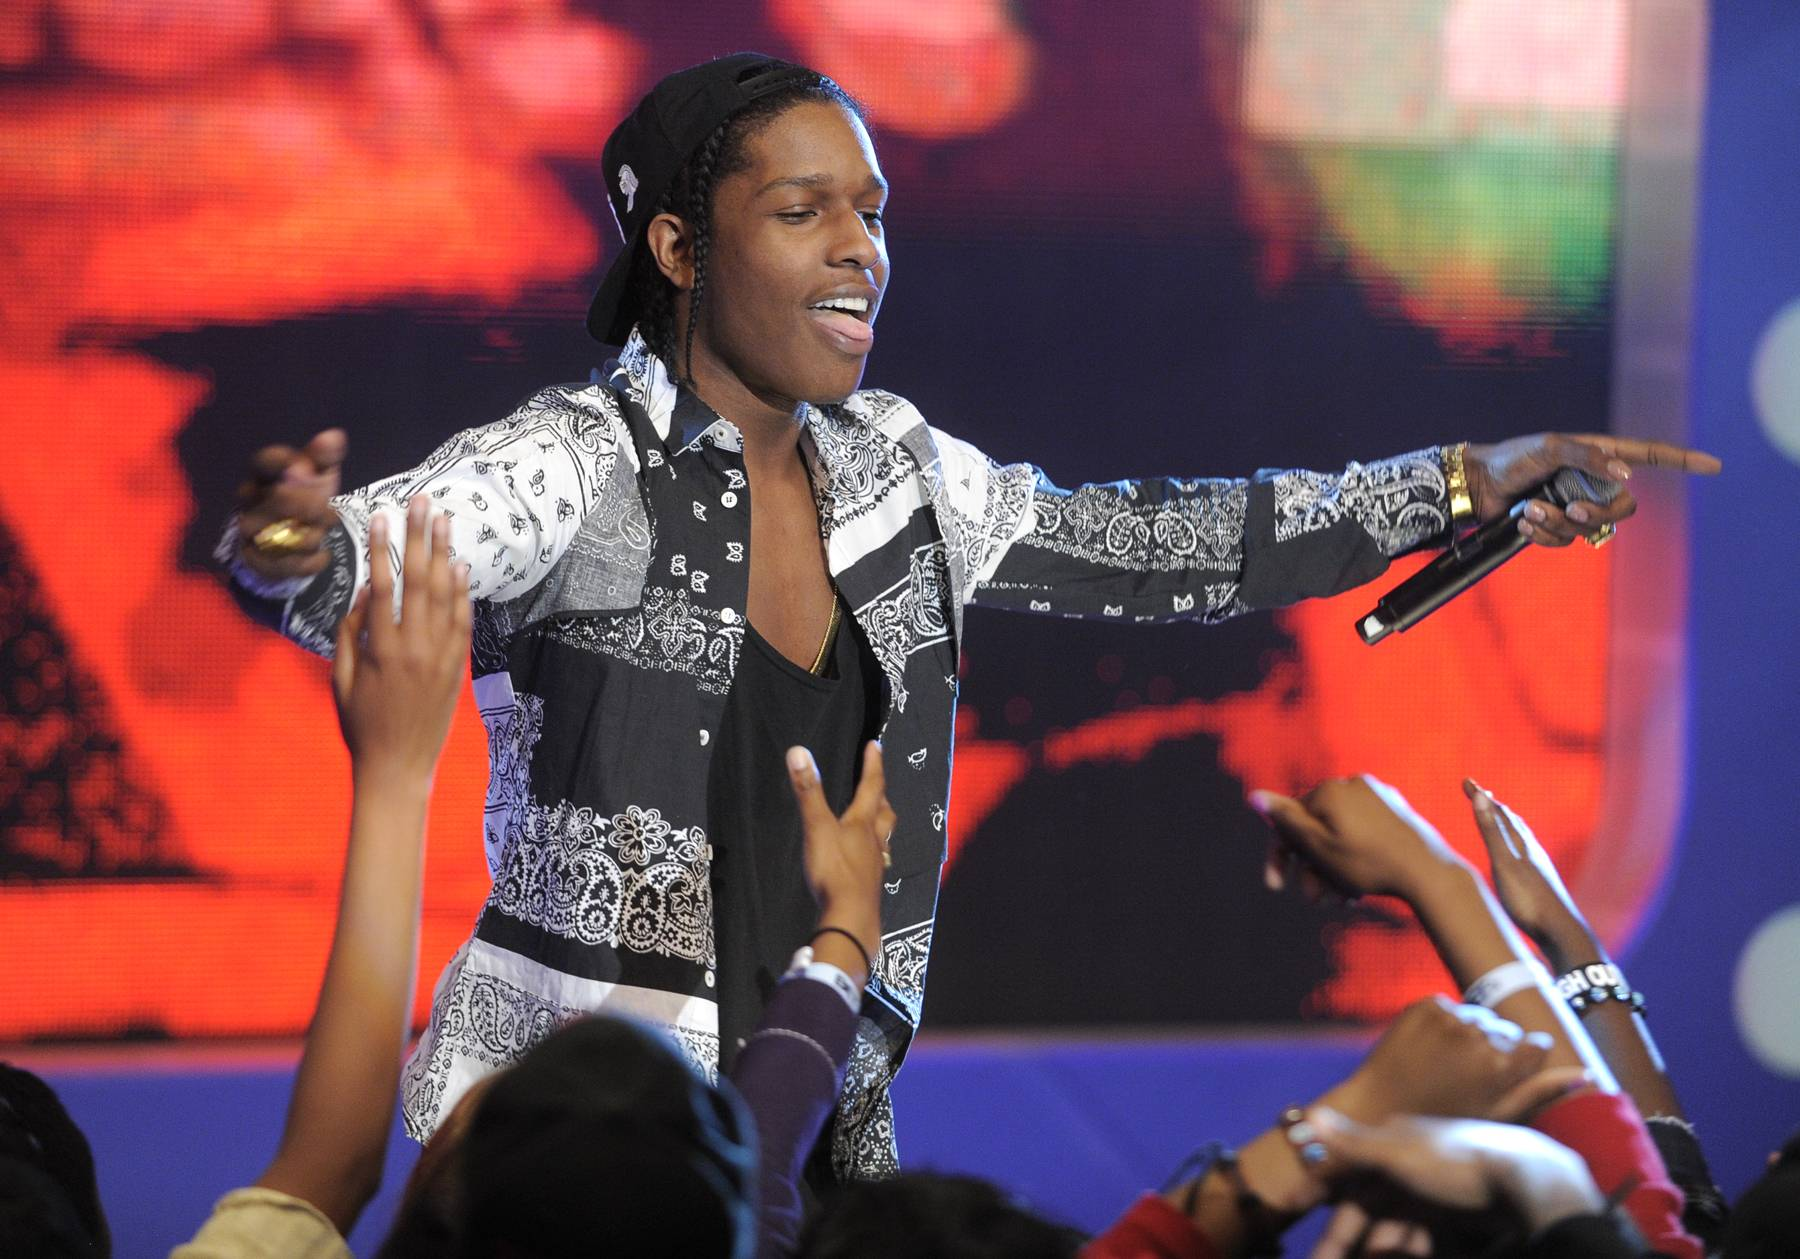 """A$AP Rocky - It's ironic: A$AP Rocky says he's sleeping on the City That Never Sleeps, even though that's where he, um, rests his head. Pretty Flacko could explain it better himself: """"I just don't like modern New York hip hop,"""" he said in an interview last year. """"I liked Dipset, I liked G-Unit ? I liked all that sh*t in [that] era. I'm just saying now, today, I don't really f*** with a lot of New York rappers. There's a few that I think is cool but that's about it. Not to say I don't f*** with it but I choose not to listen to it on my own time."""" (Photo: John Ricard / BET)."""